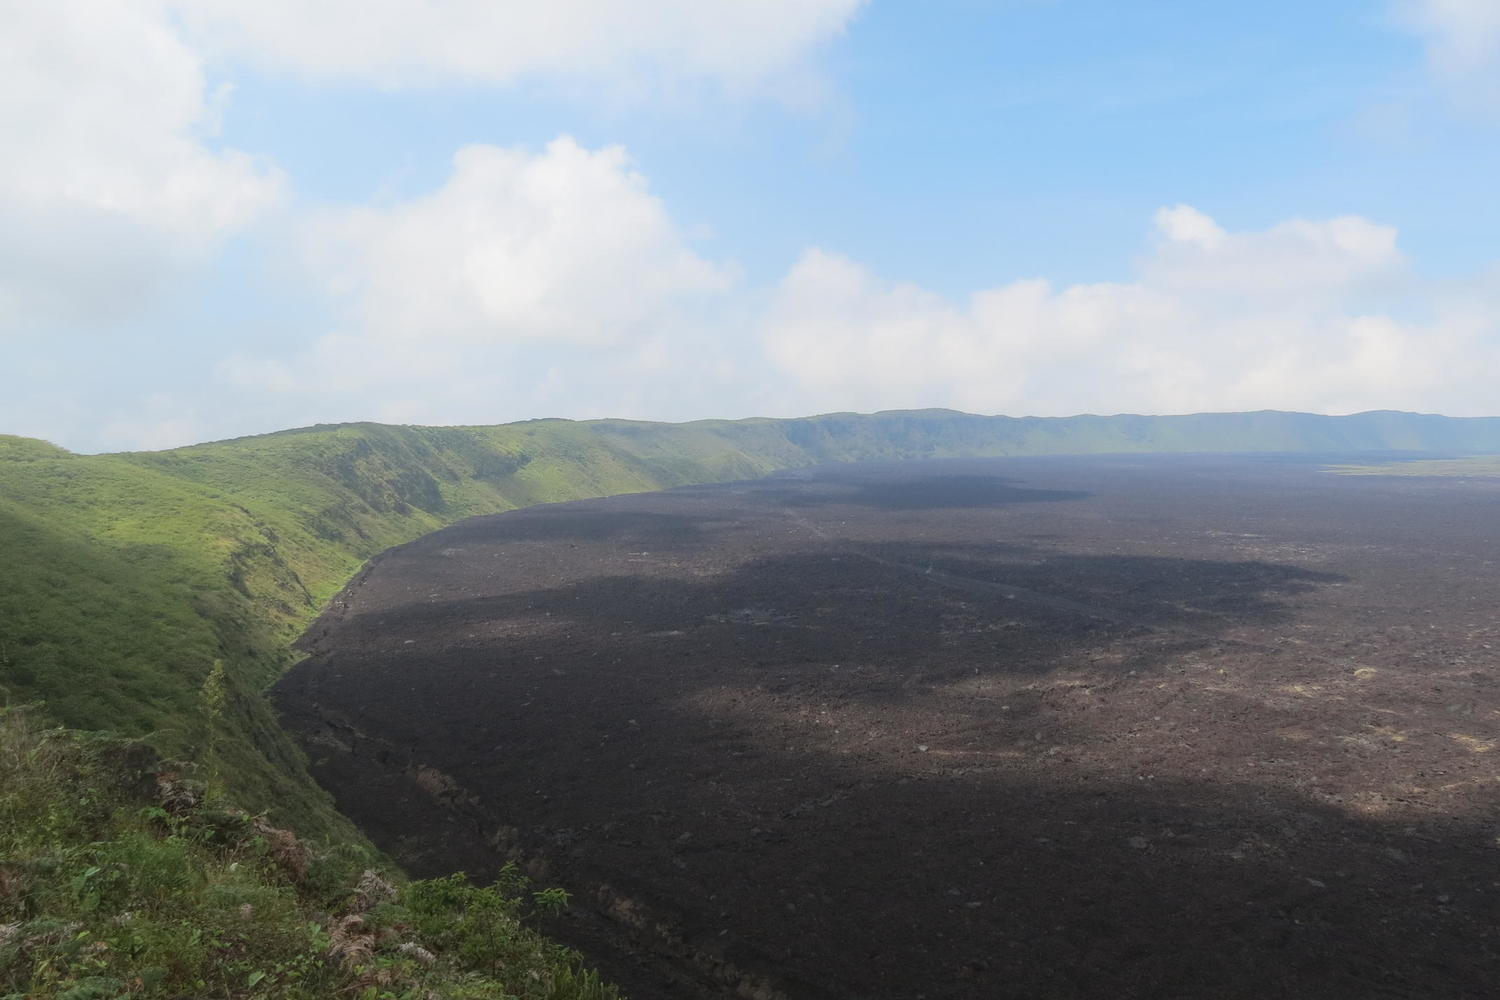 The enormous caldera of Sierra Negra in the Galapagos